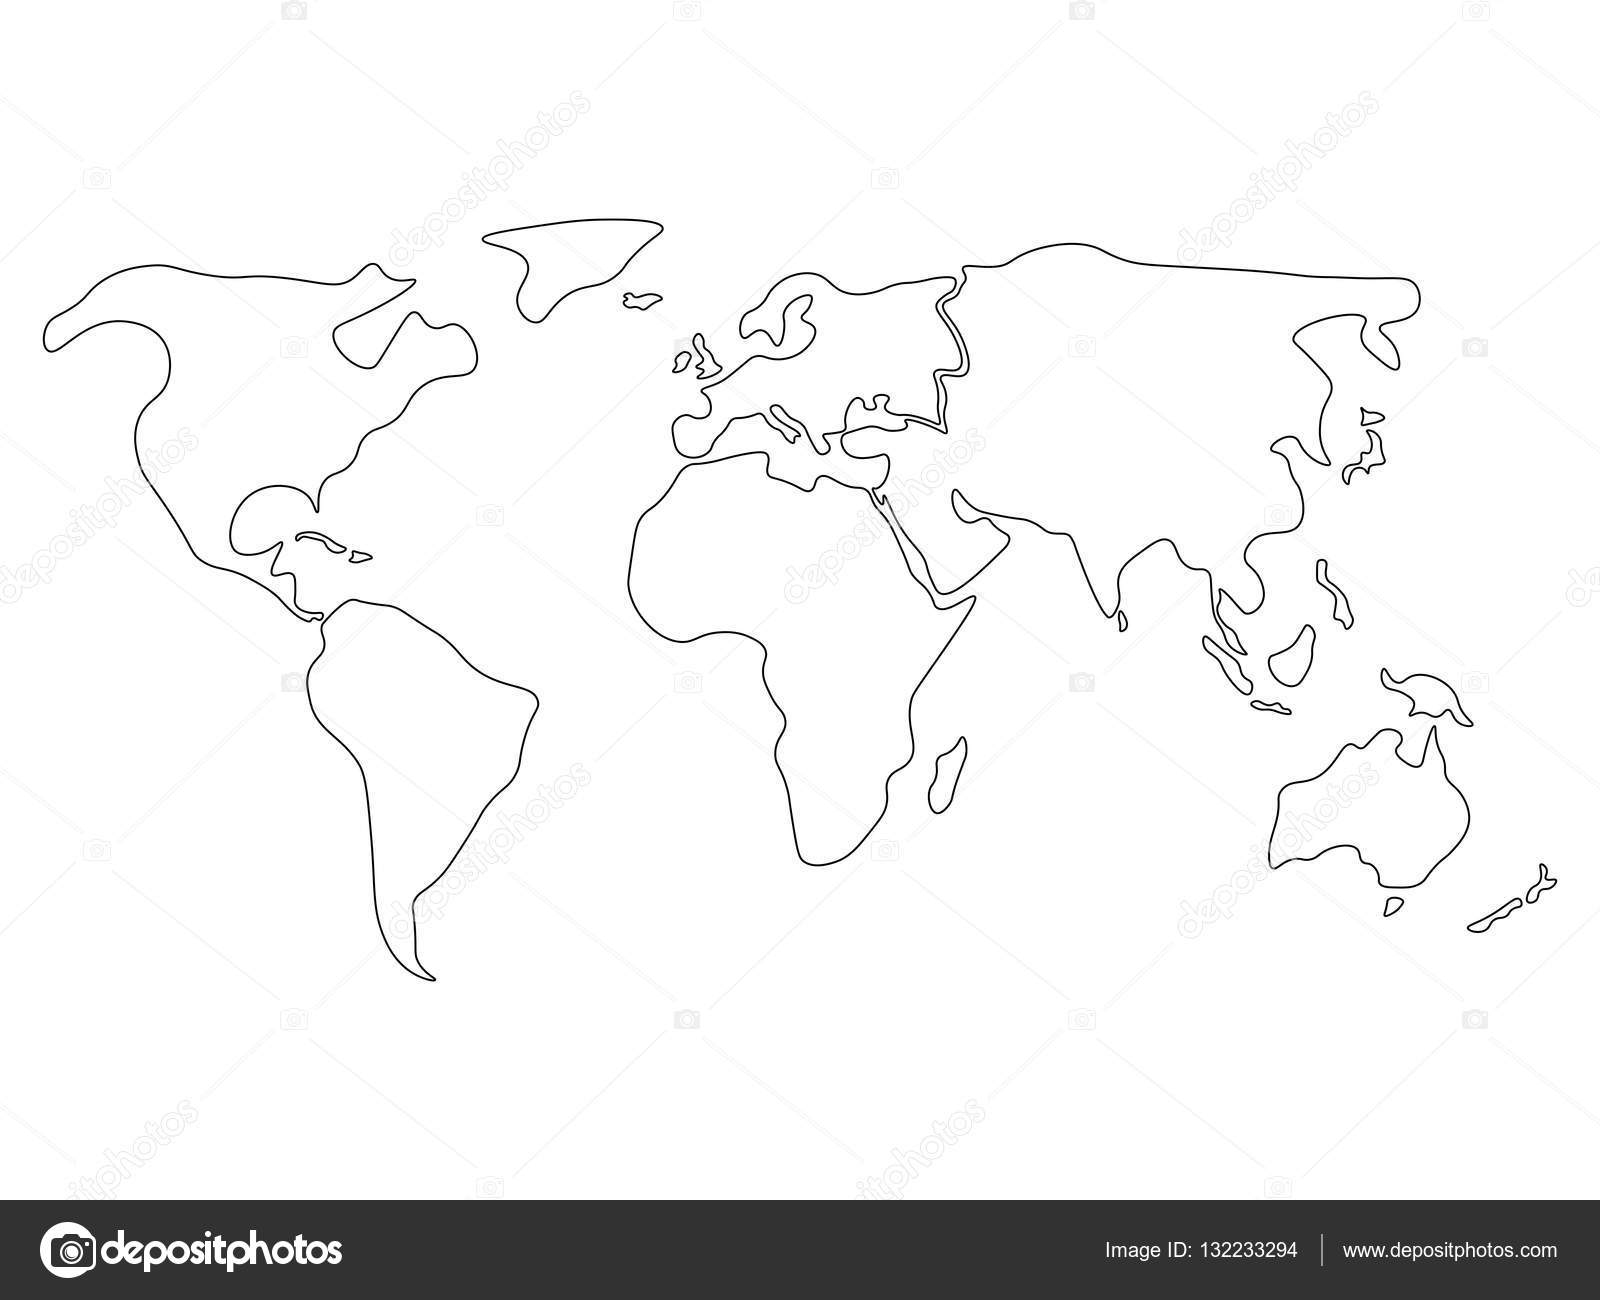 Simplified world map divided to continents simple black outline simplified world map divided to continents simple black outline stock vector gumiabroncs Choice Image